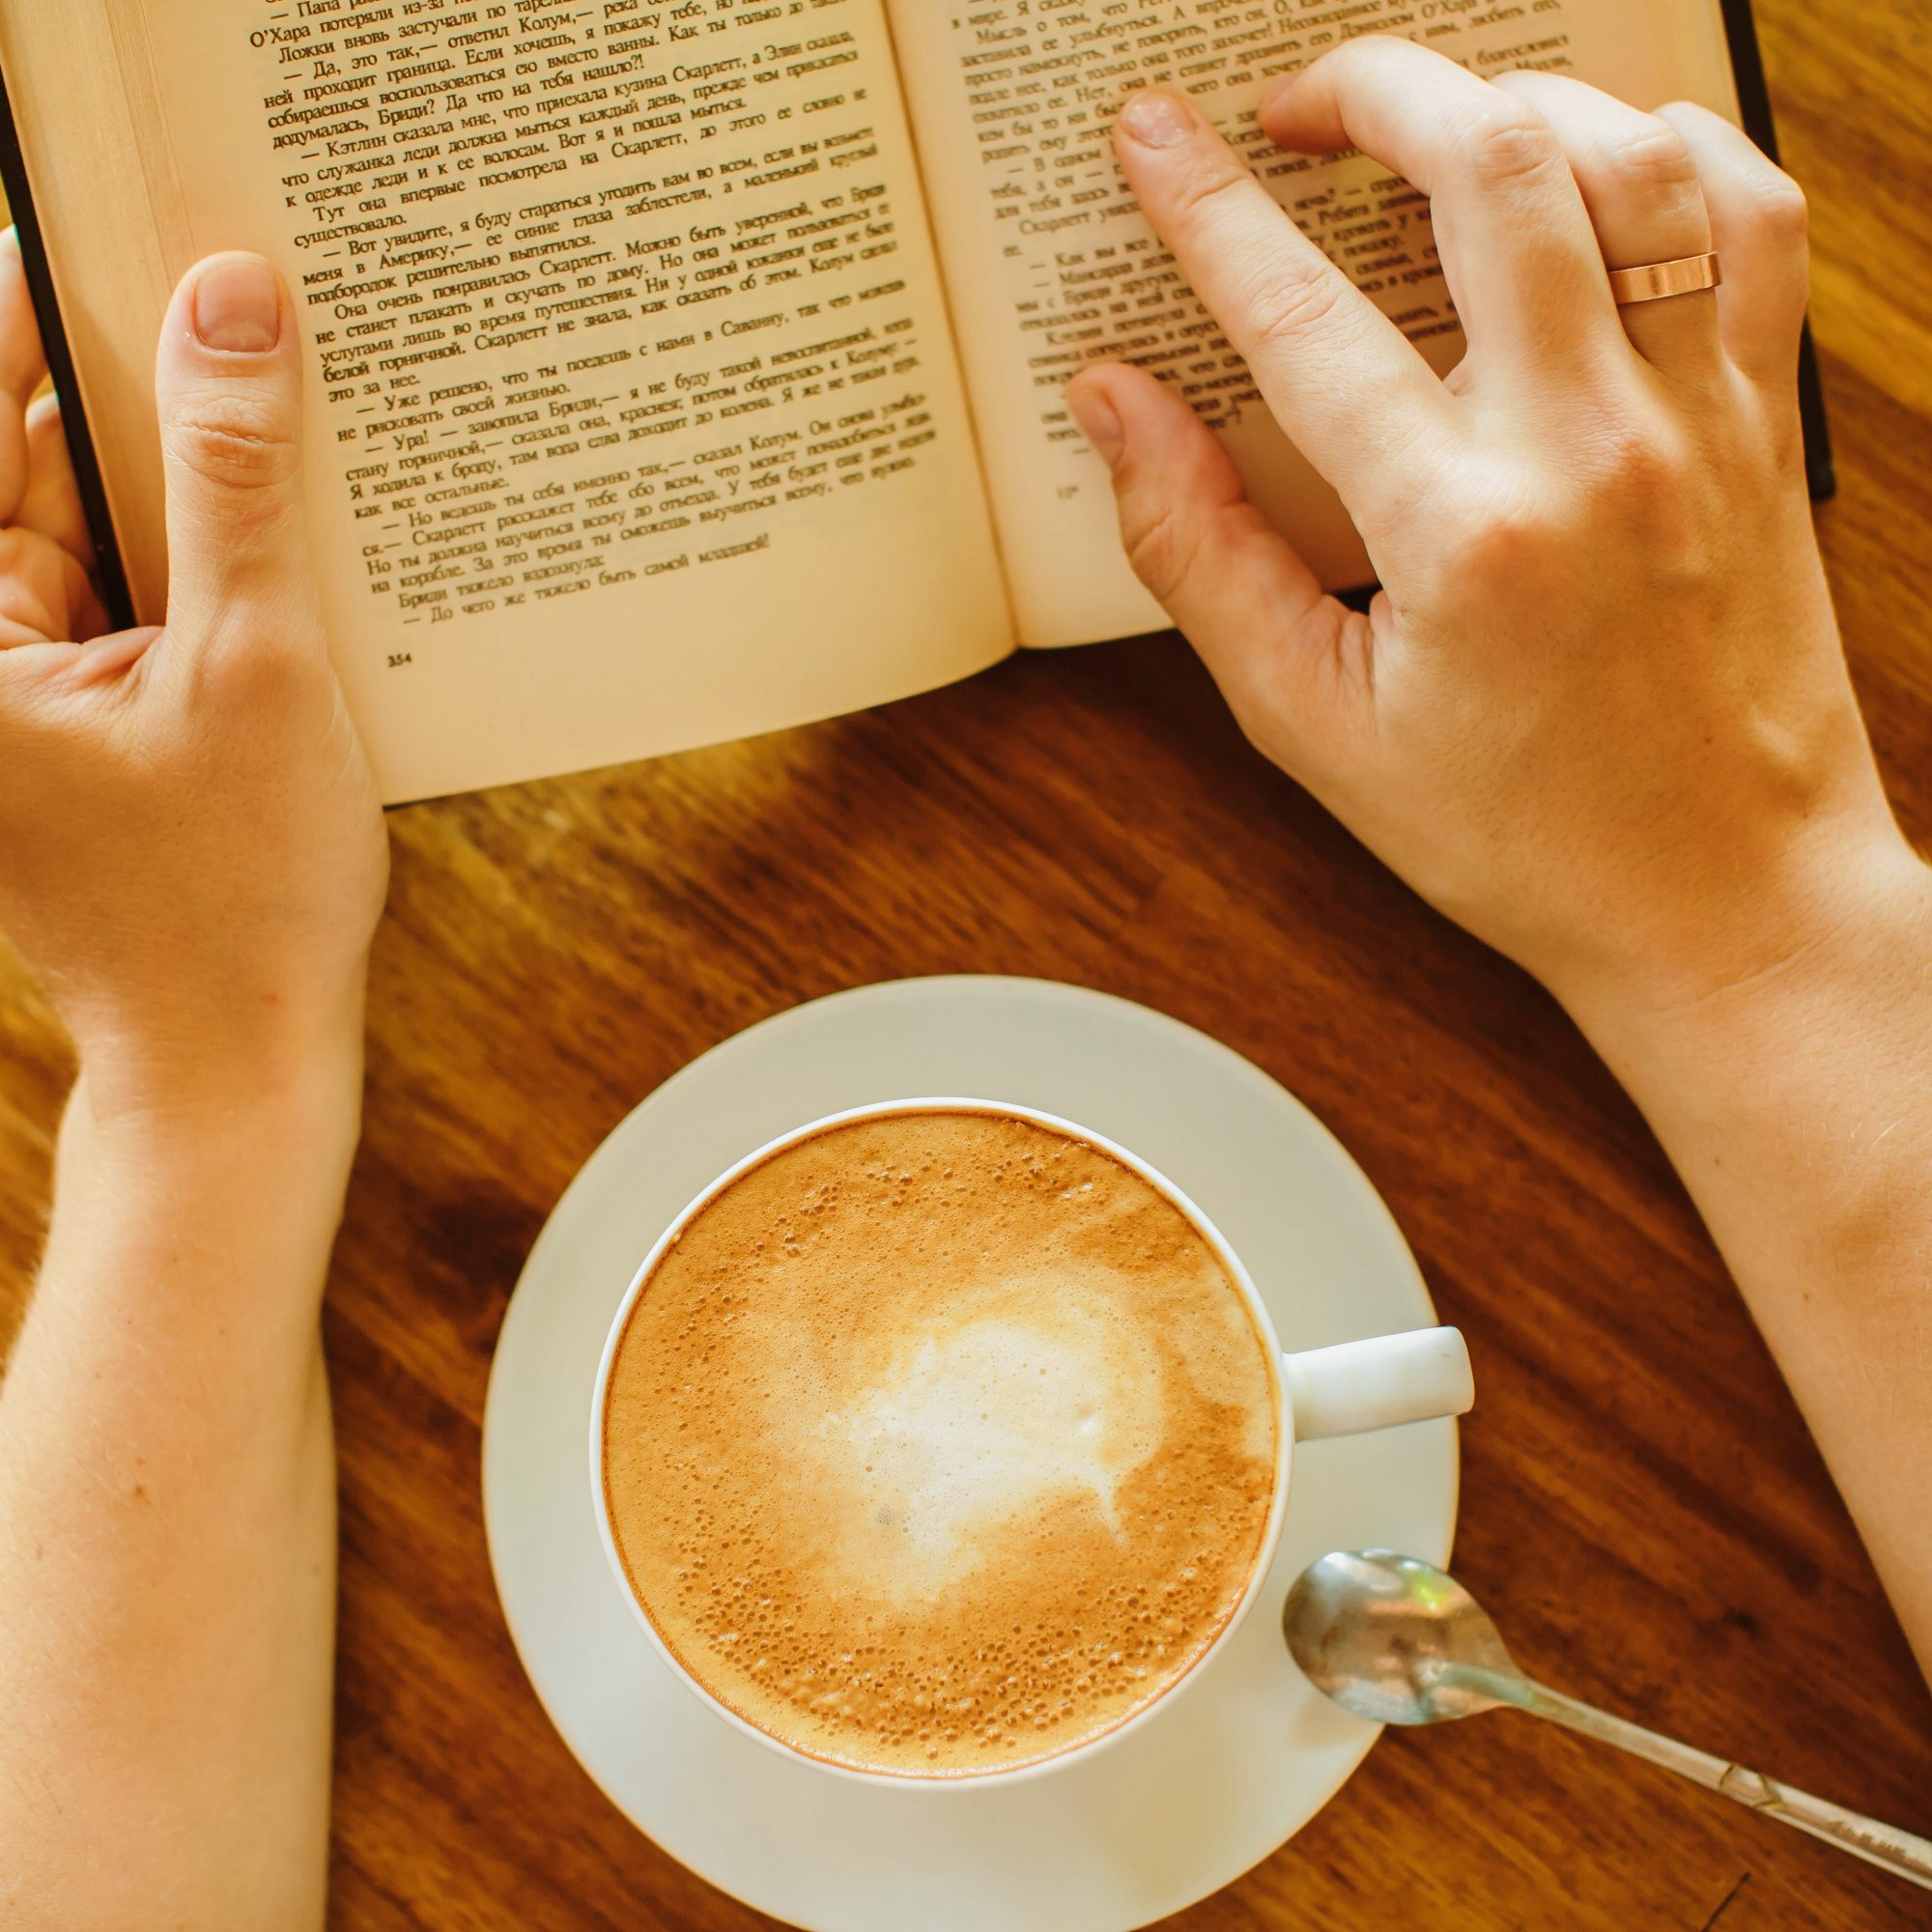 Woman hands, coffee and book on the table